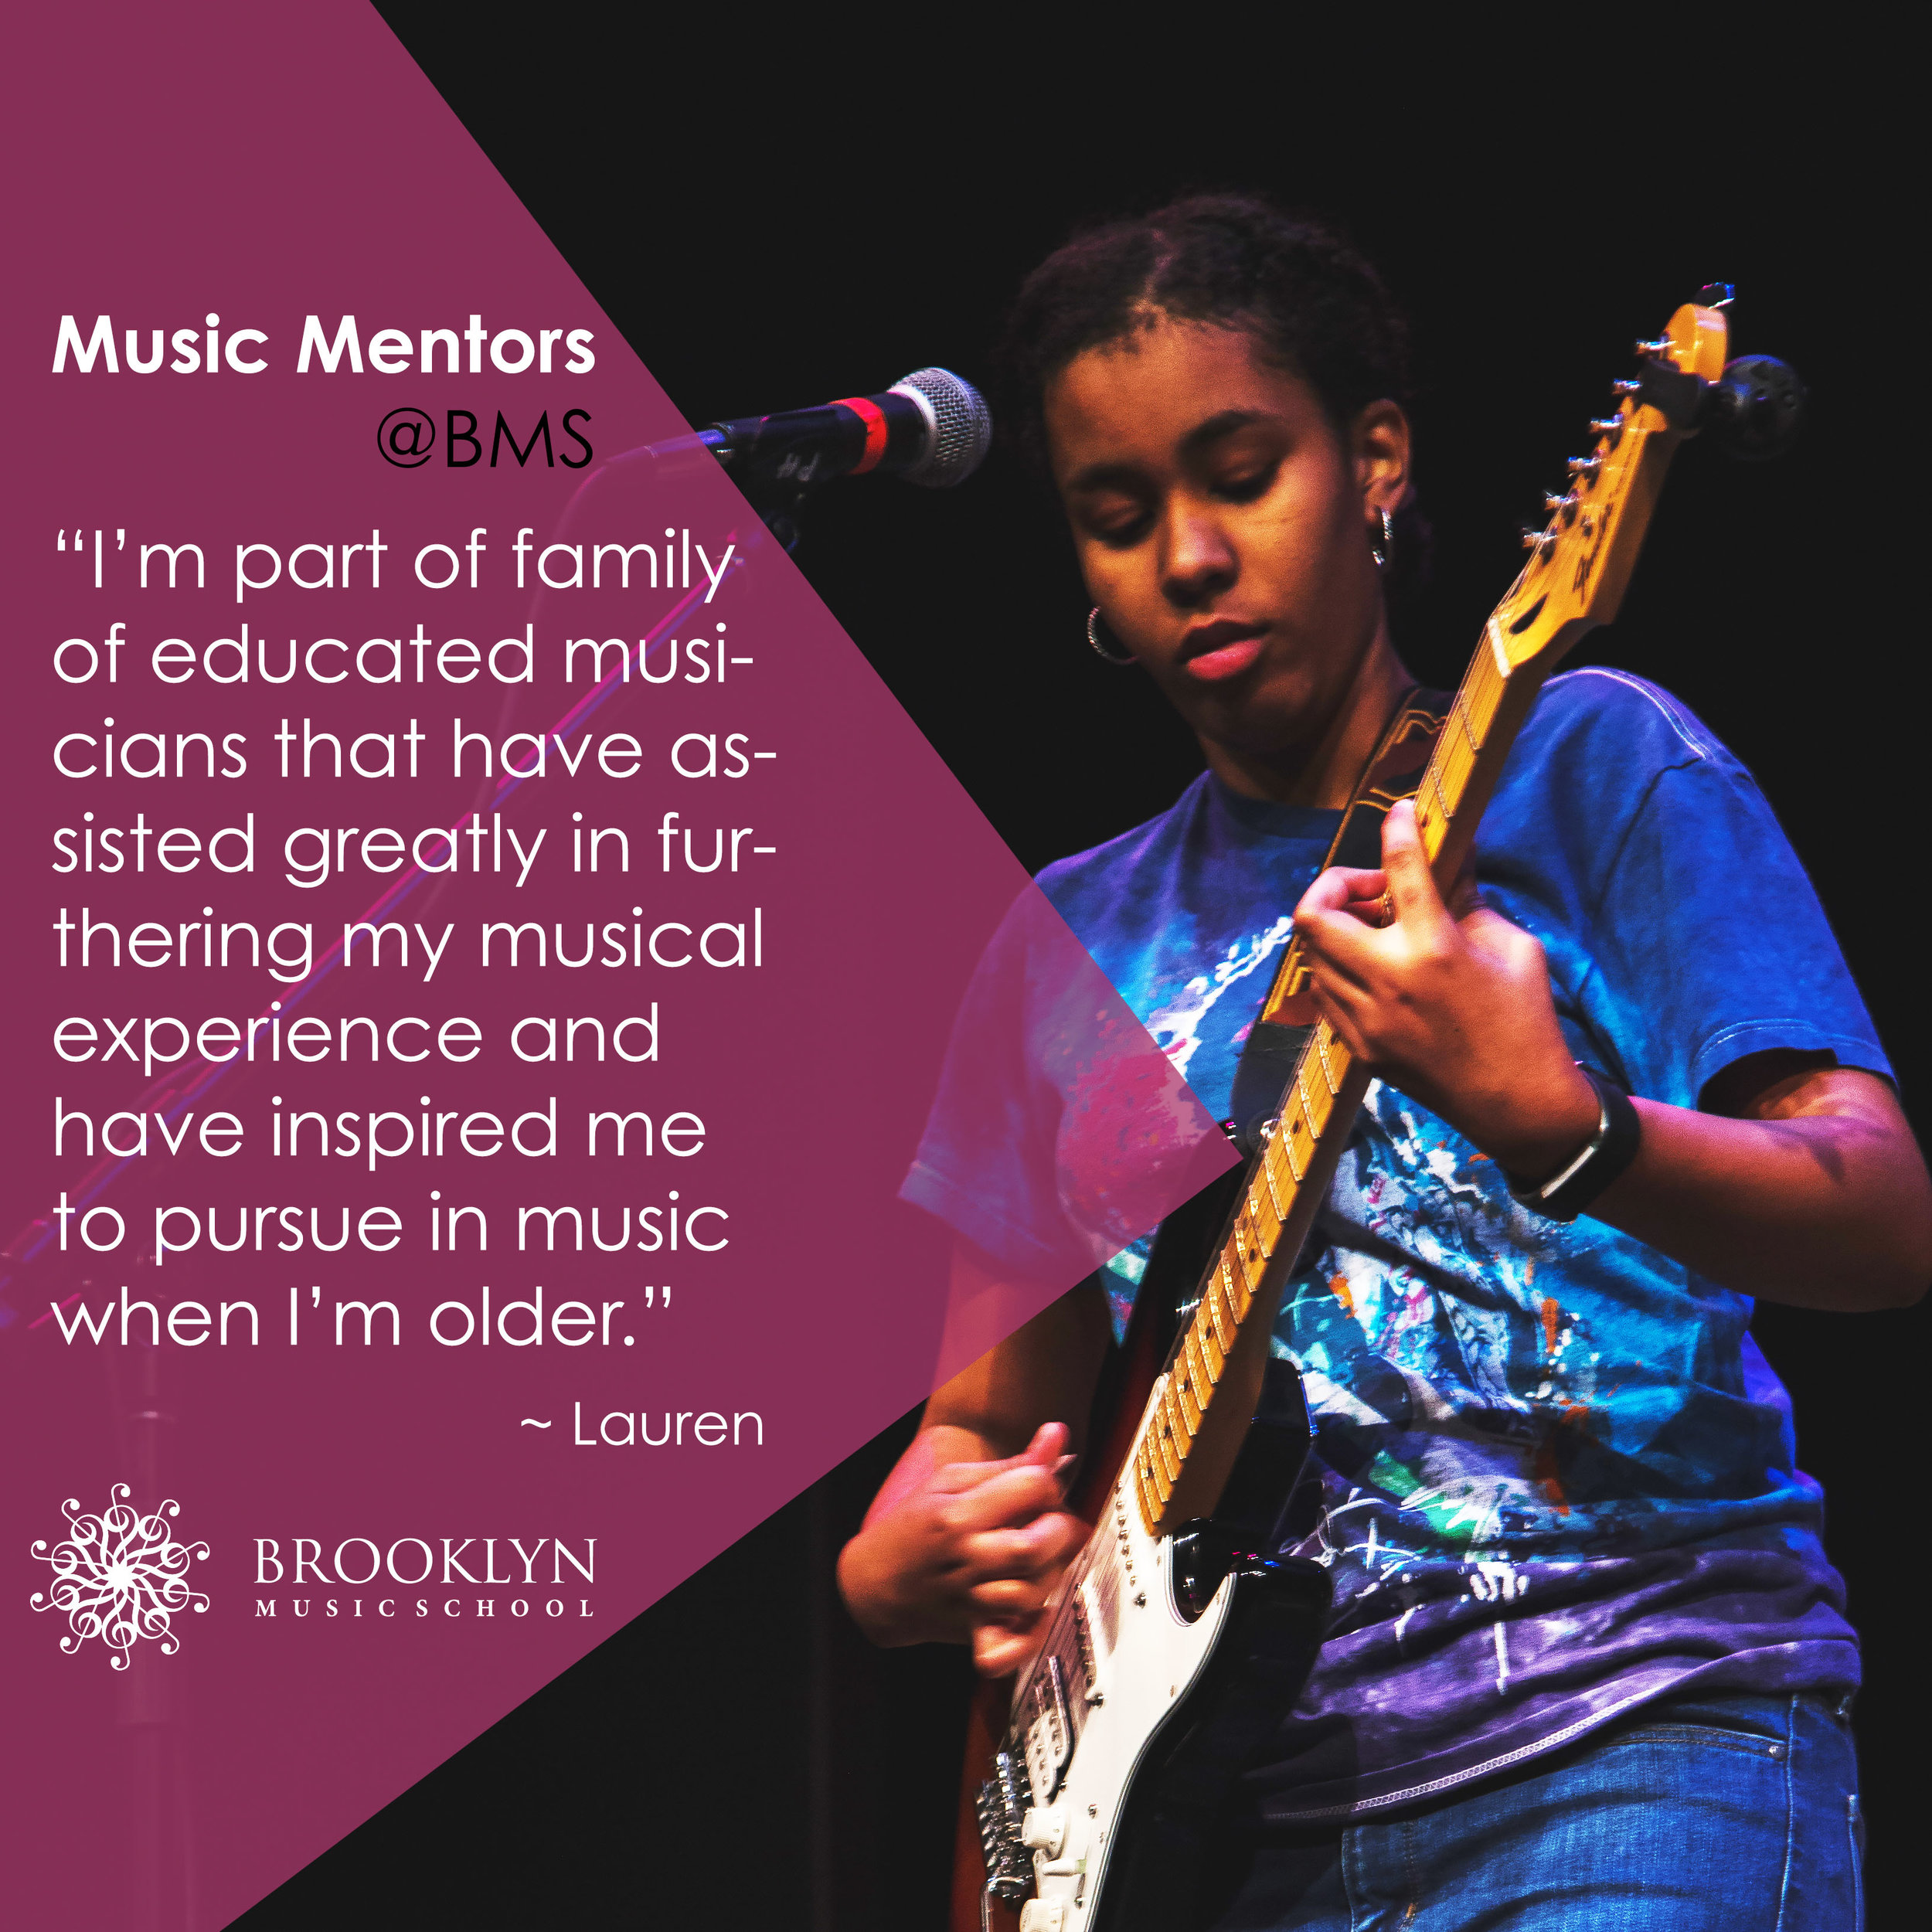 "LAUREN (Guitar, Keyboard) - To me, the mentor program provides an outstanding opportunity to dive more into music than just the base of it. The program provides opportunities to get ""behind the scenes"" during performances, in addition to joining ensembles. I love the mentor program because it has helped me gain friends and feel as if I'm part of a larger family that shares the same love for music as I do. I feel like I'm part of family of educated musicians that have assisted greatly in furthering my musical experience and have inspired me to pursue in music when I'm older."